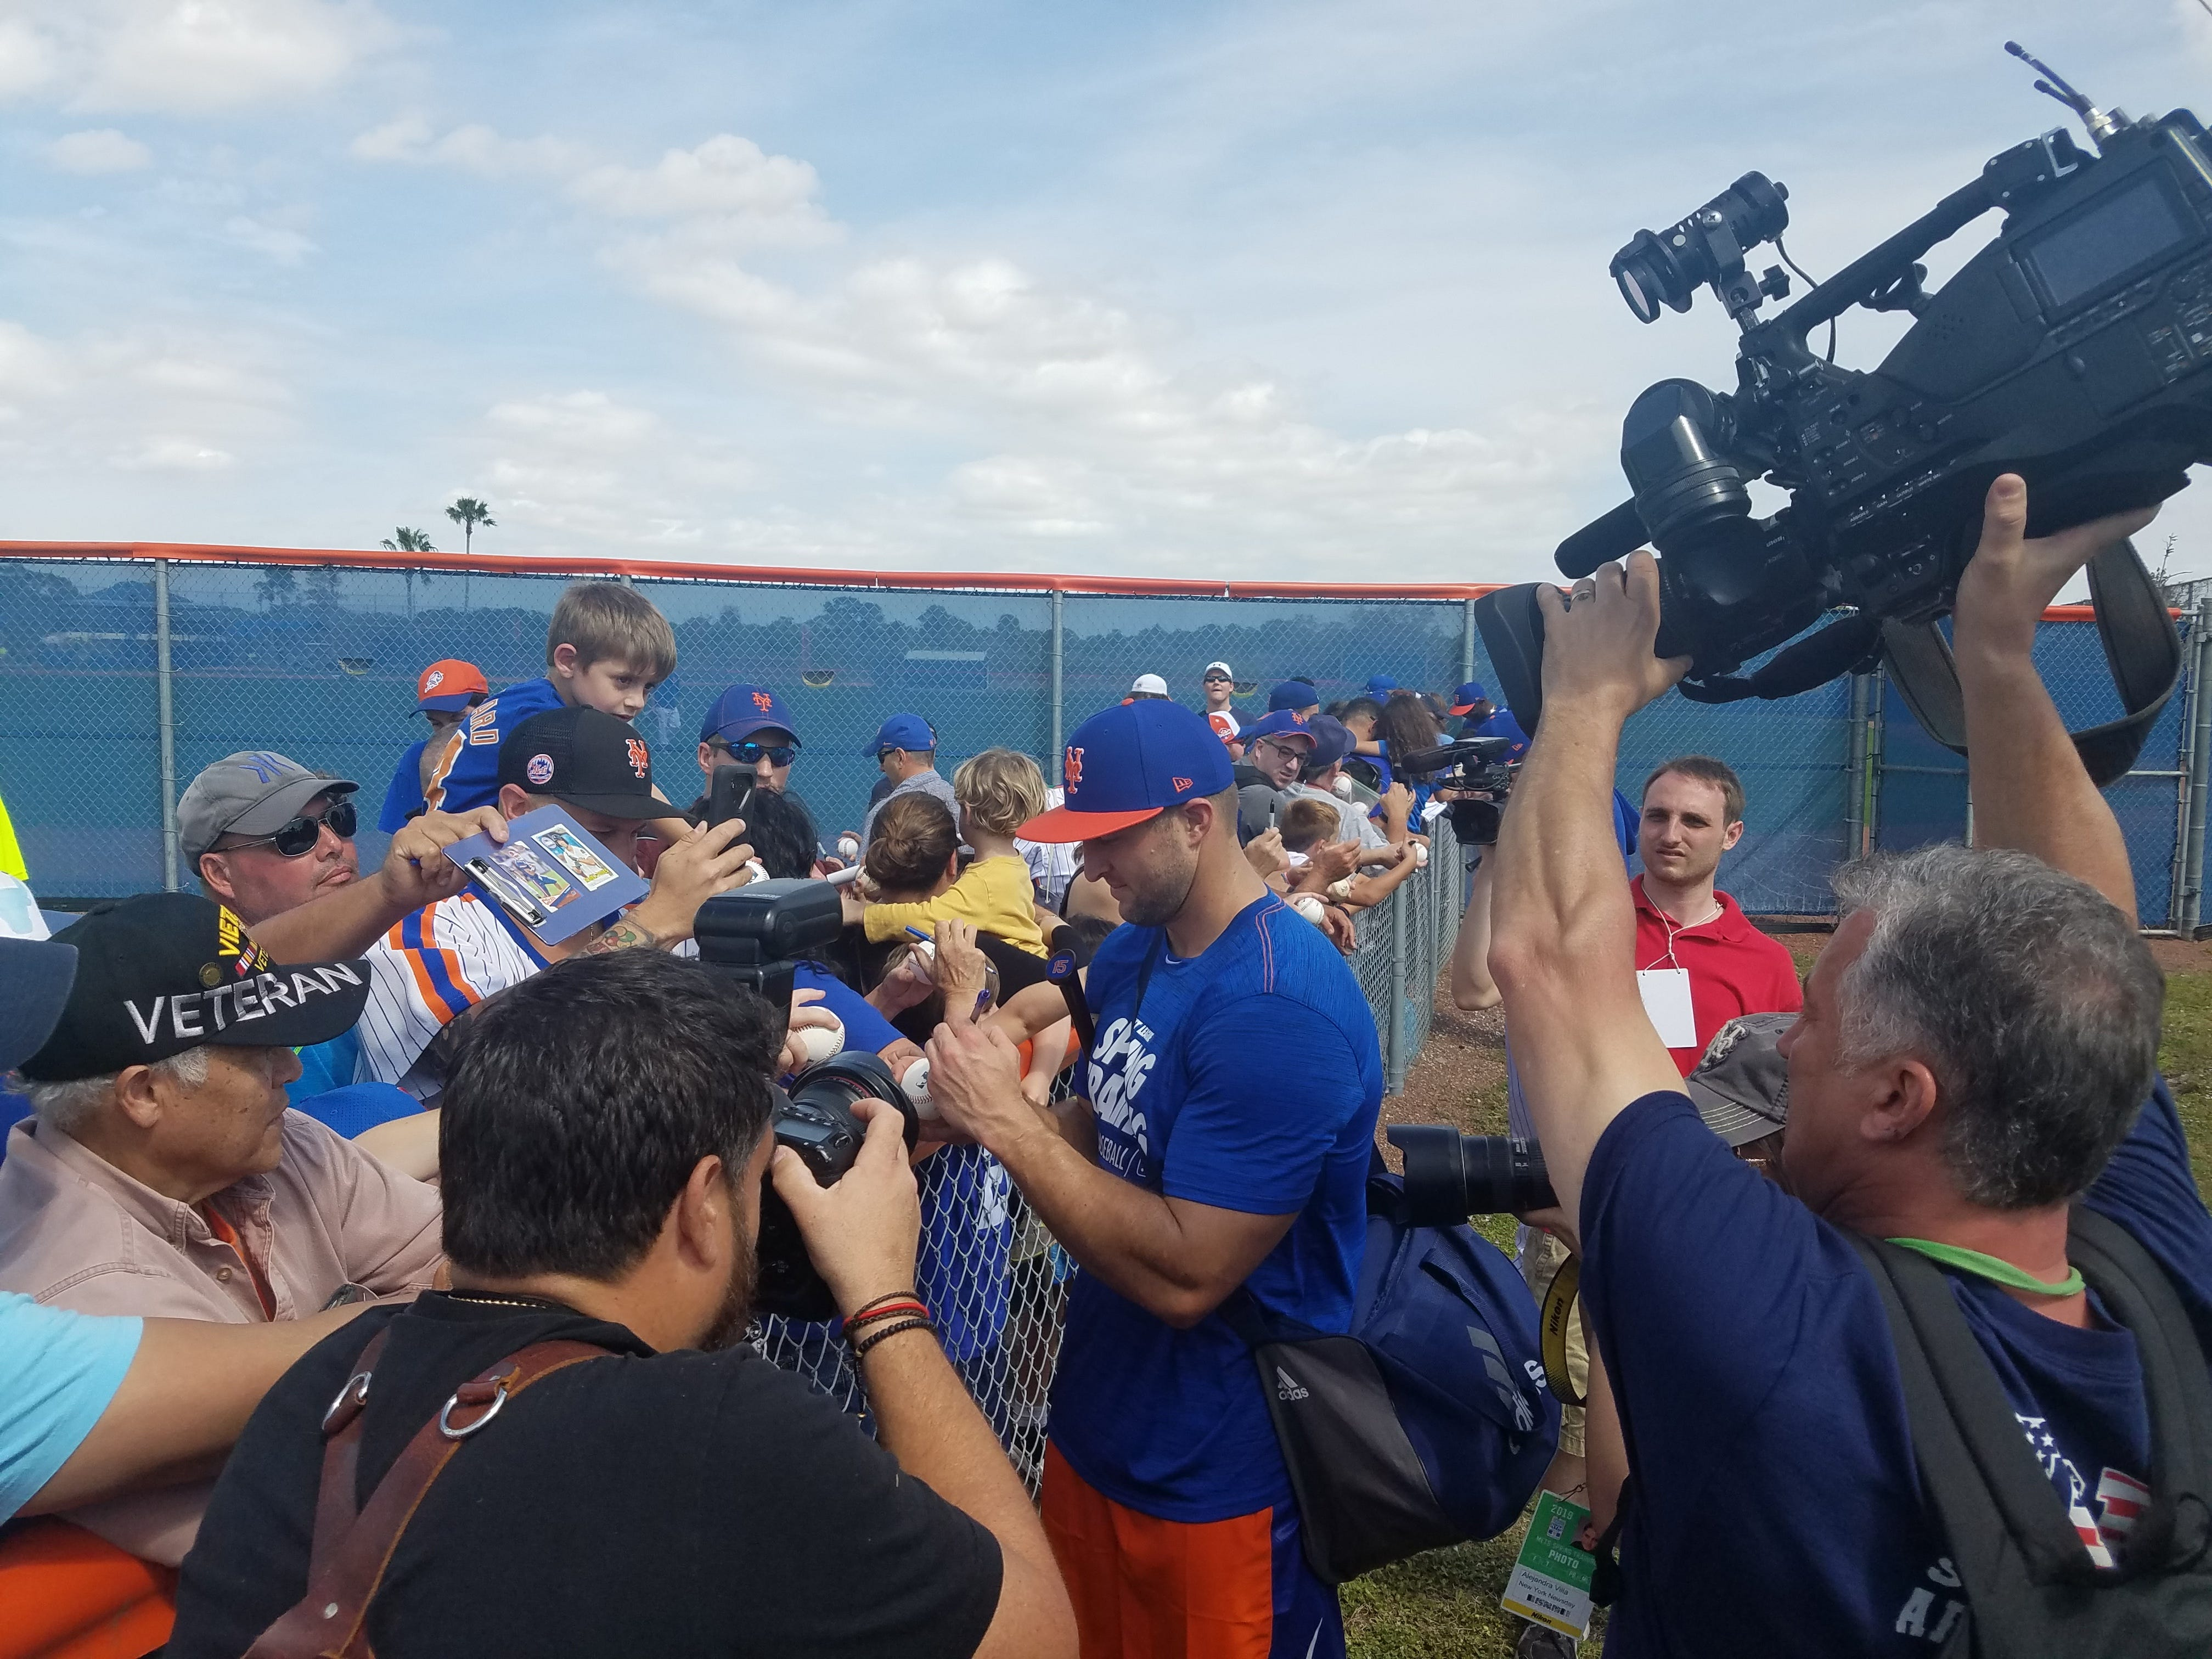 Tim Tebow signs for fans Saturday.